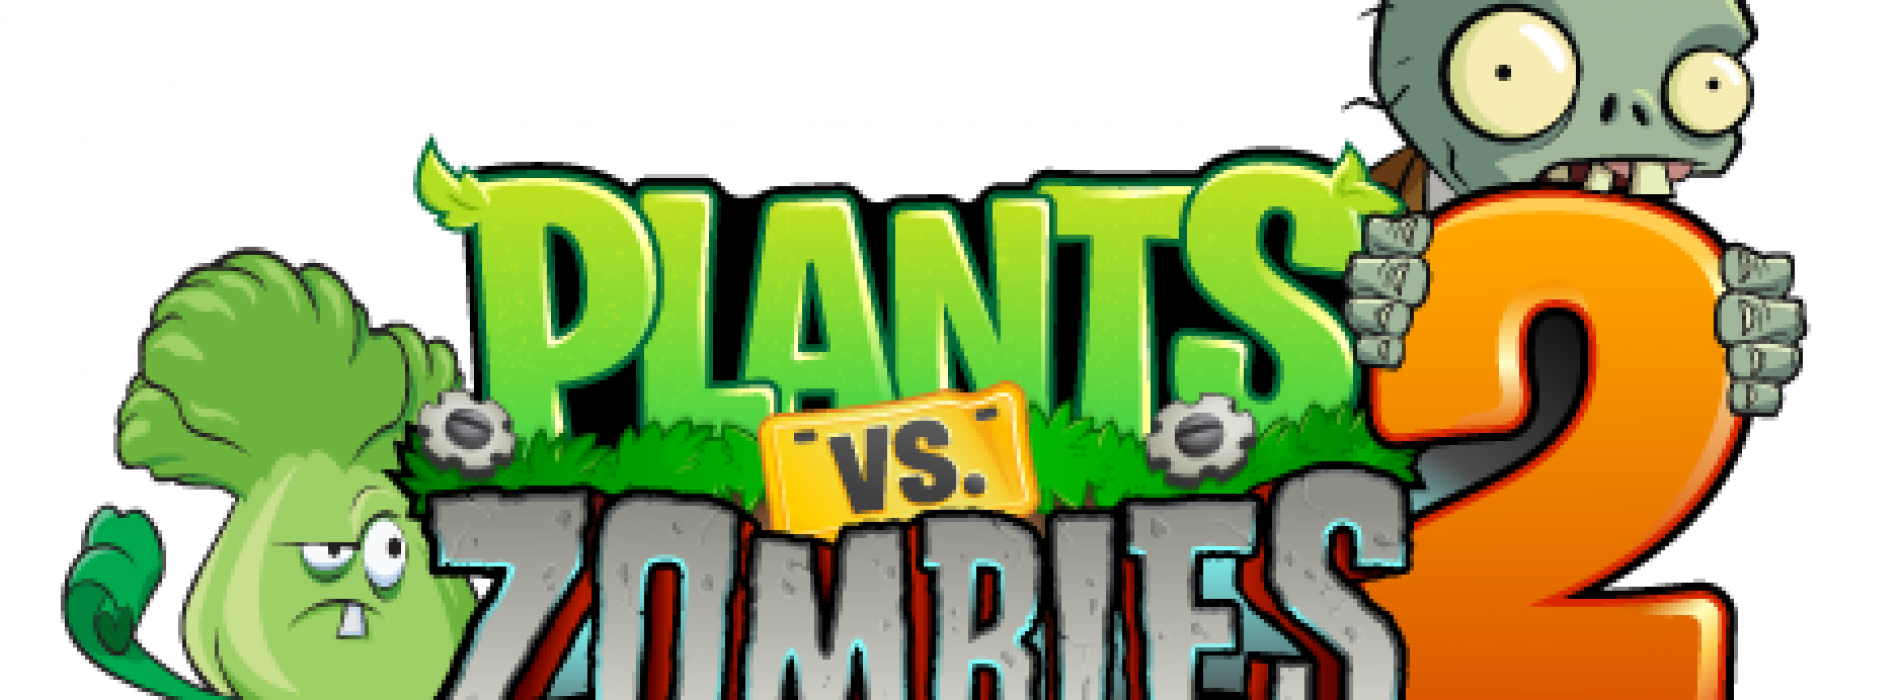 "Plants vs. Zombies 2 expected ""this fall"""